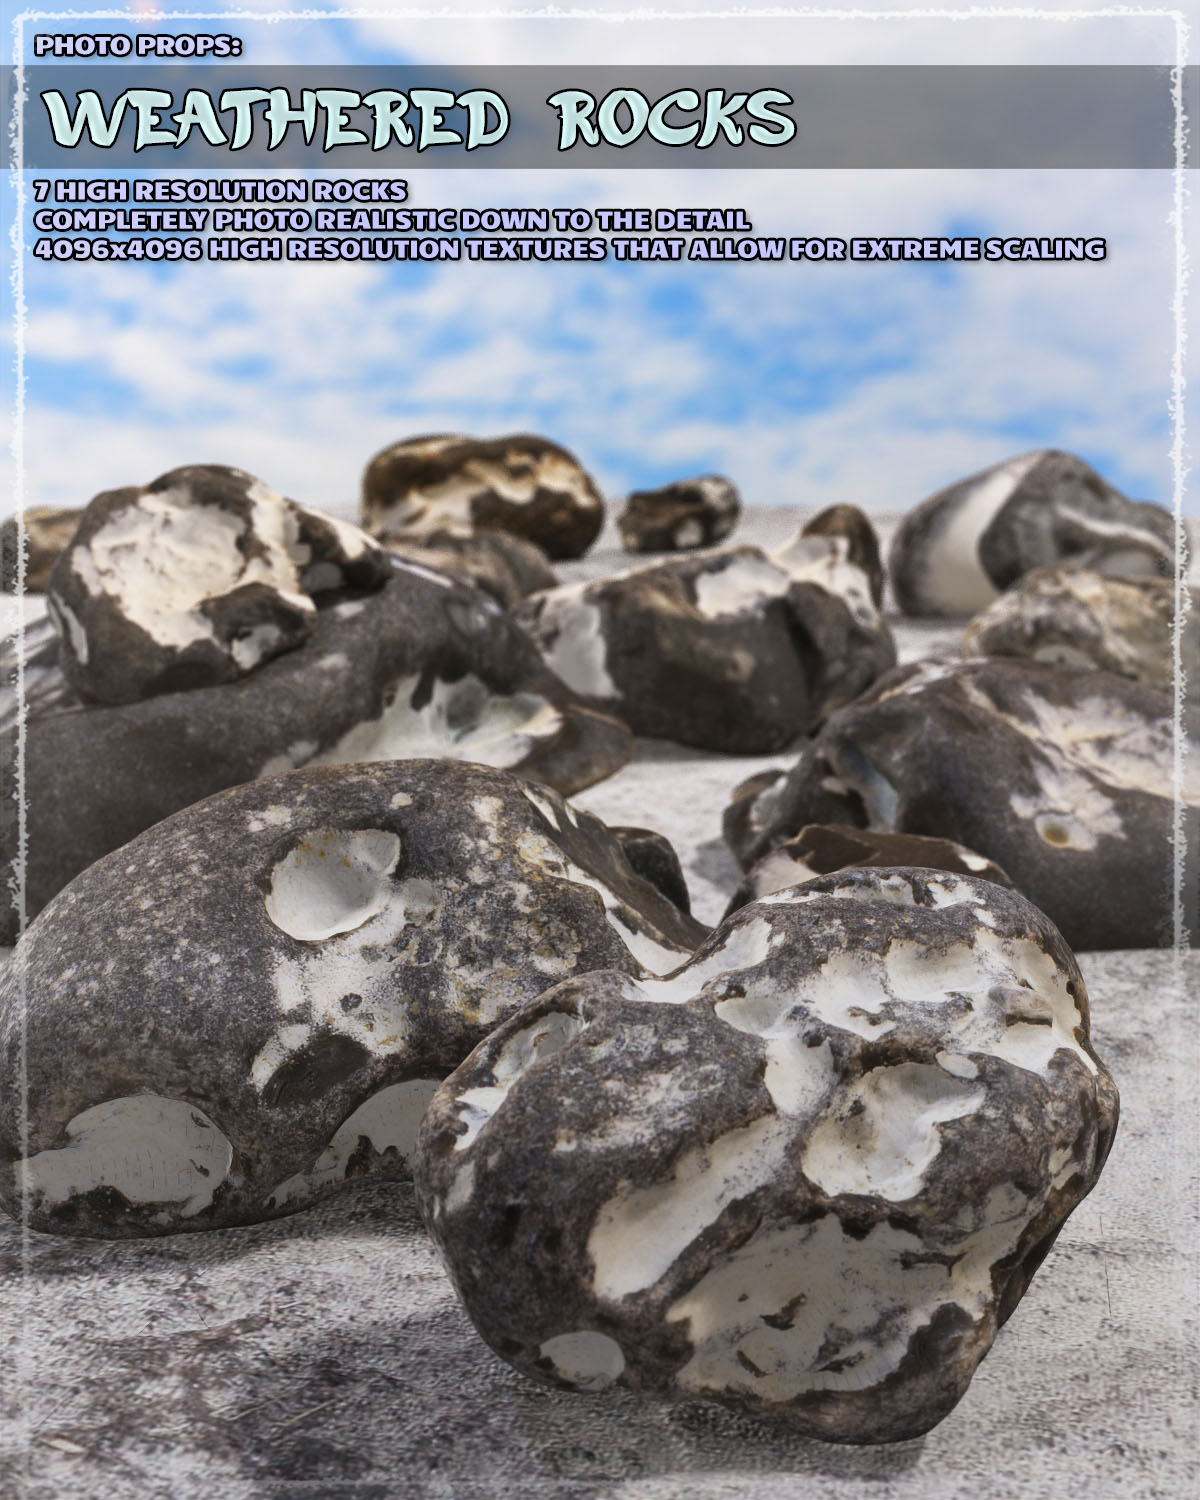 Photo Props: Weathered Rocks - Extended License